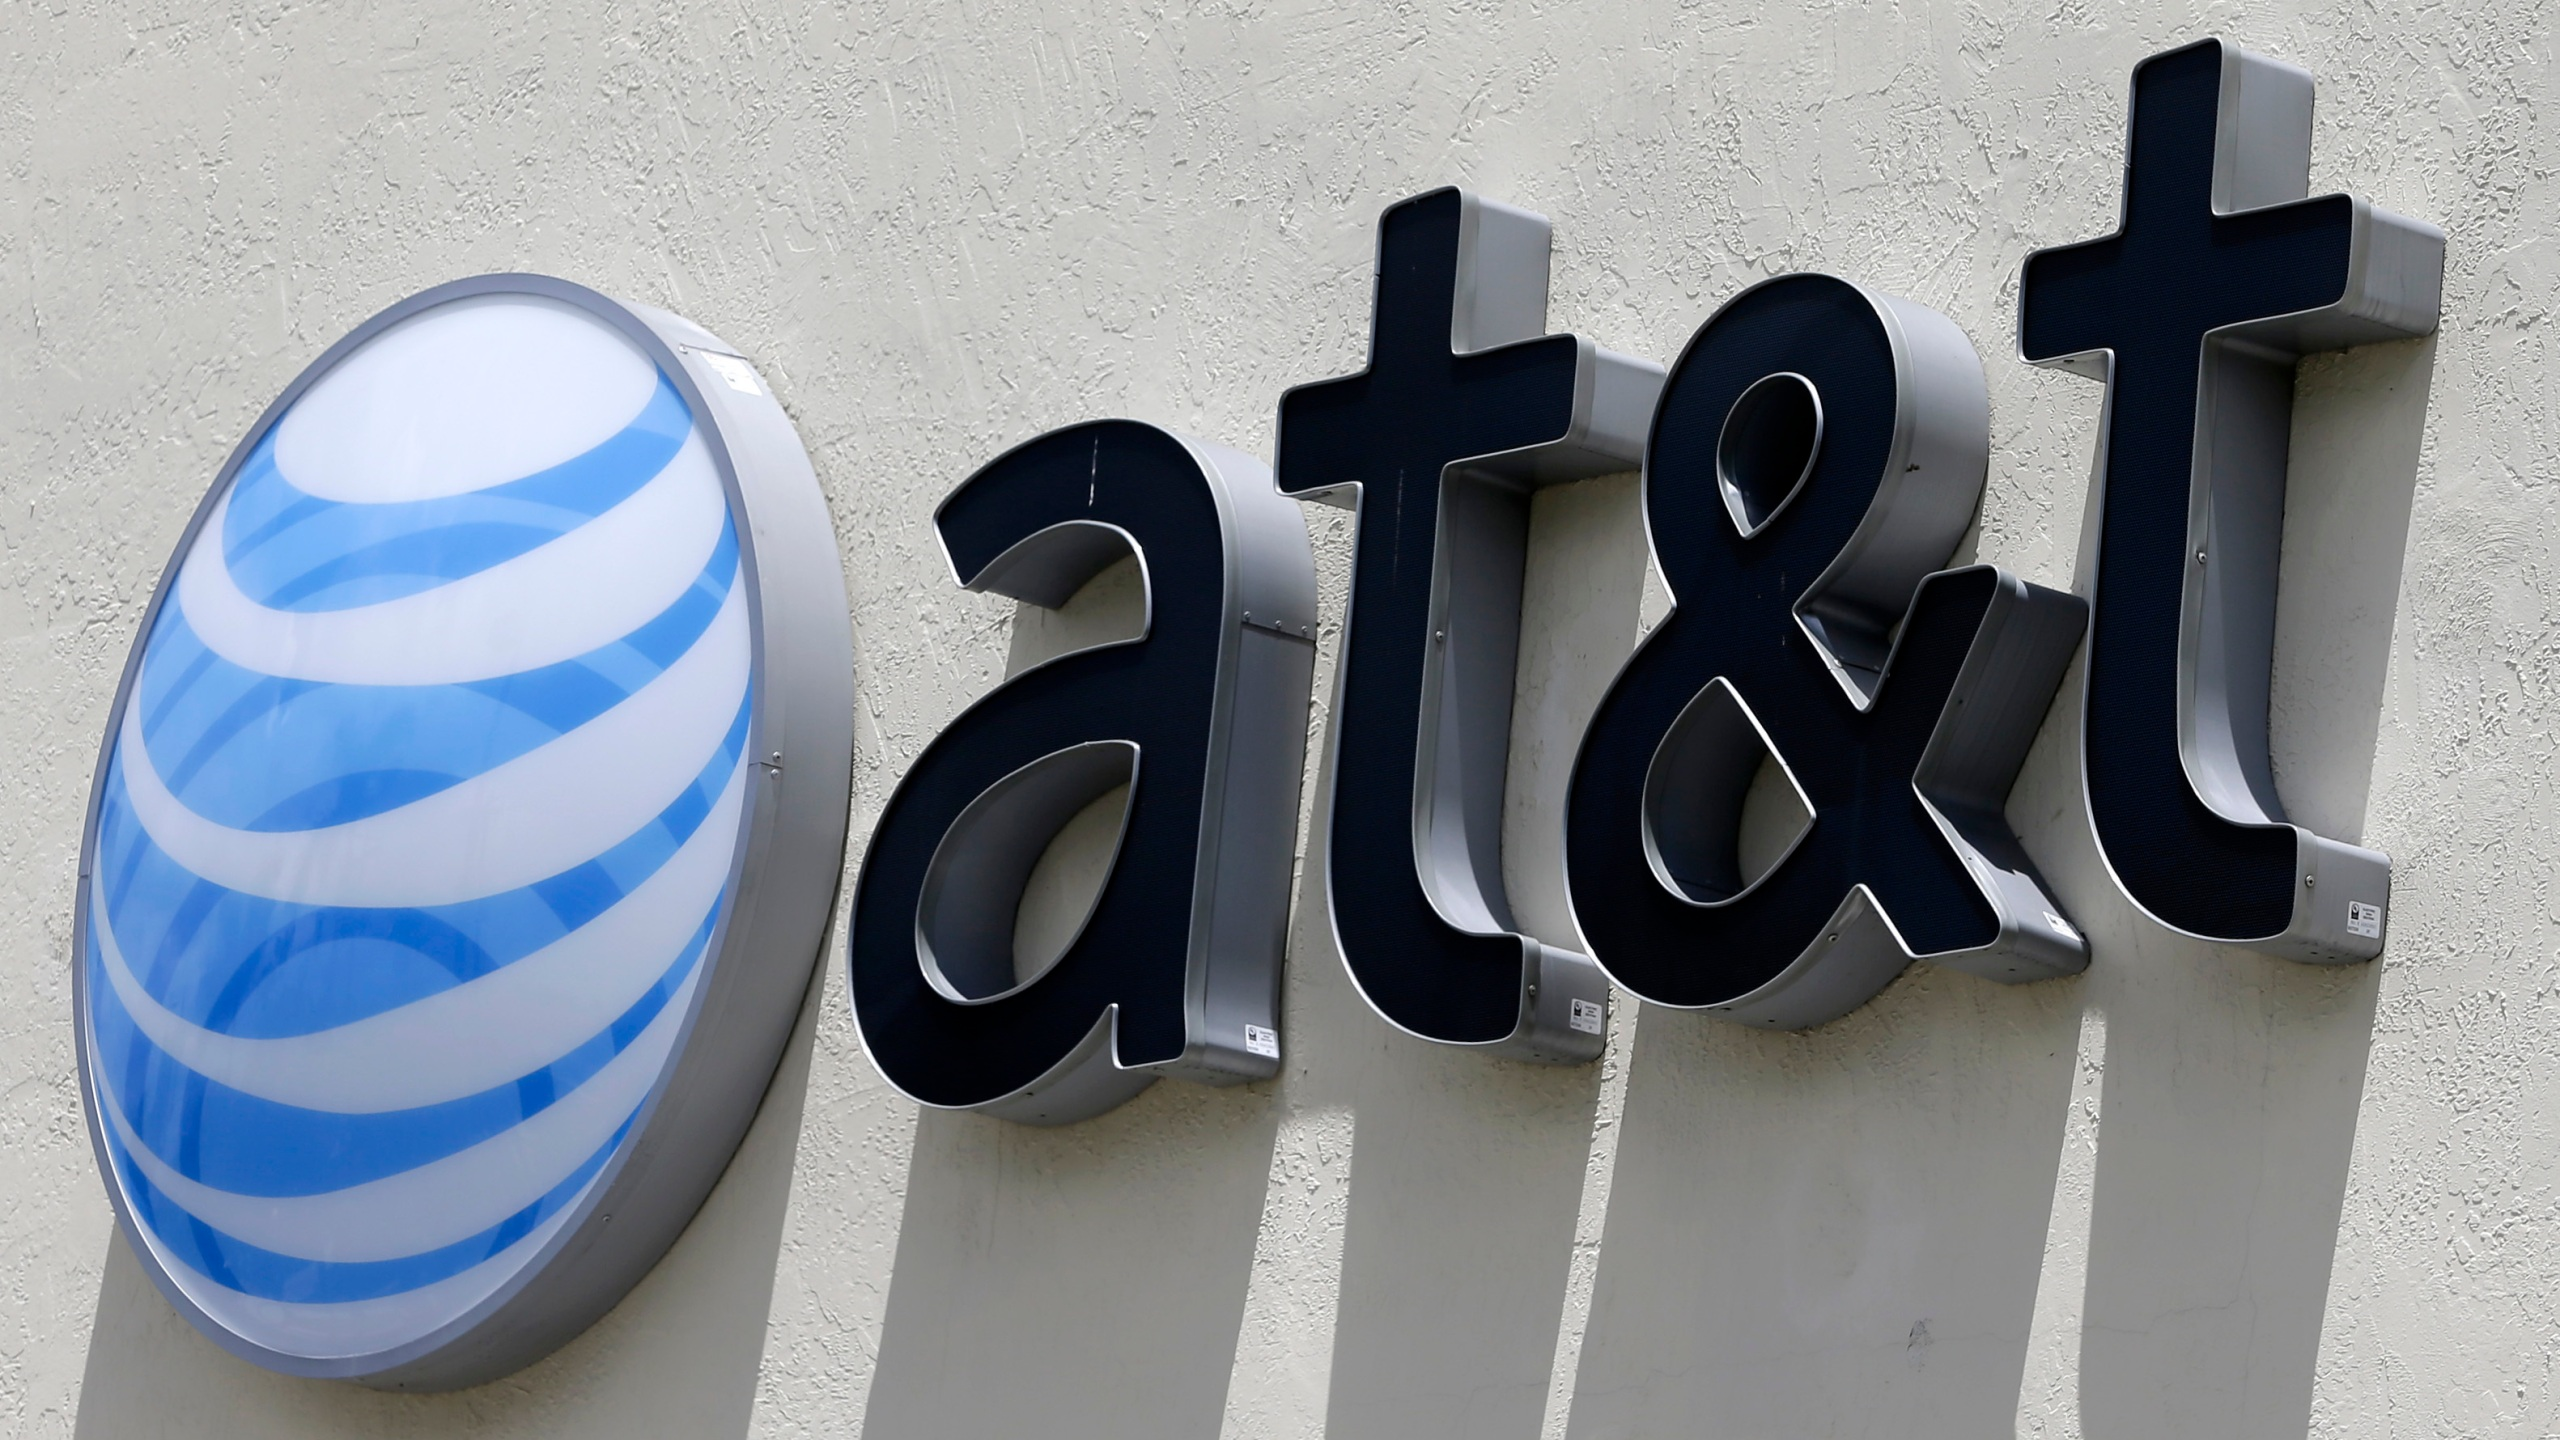 AT&T_WarnerMedia_Streaming_Service_48068-159532.jpg90233039